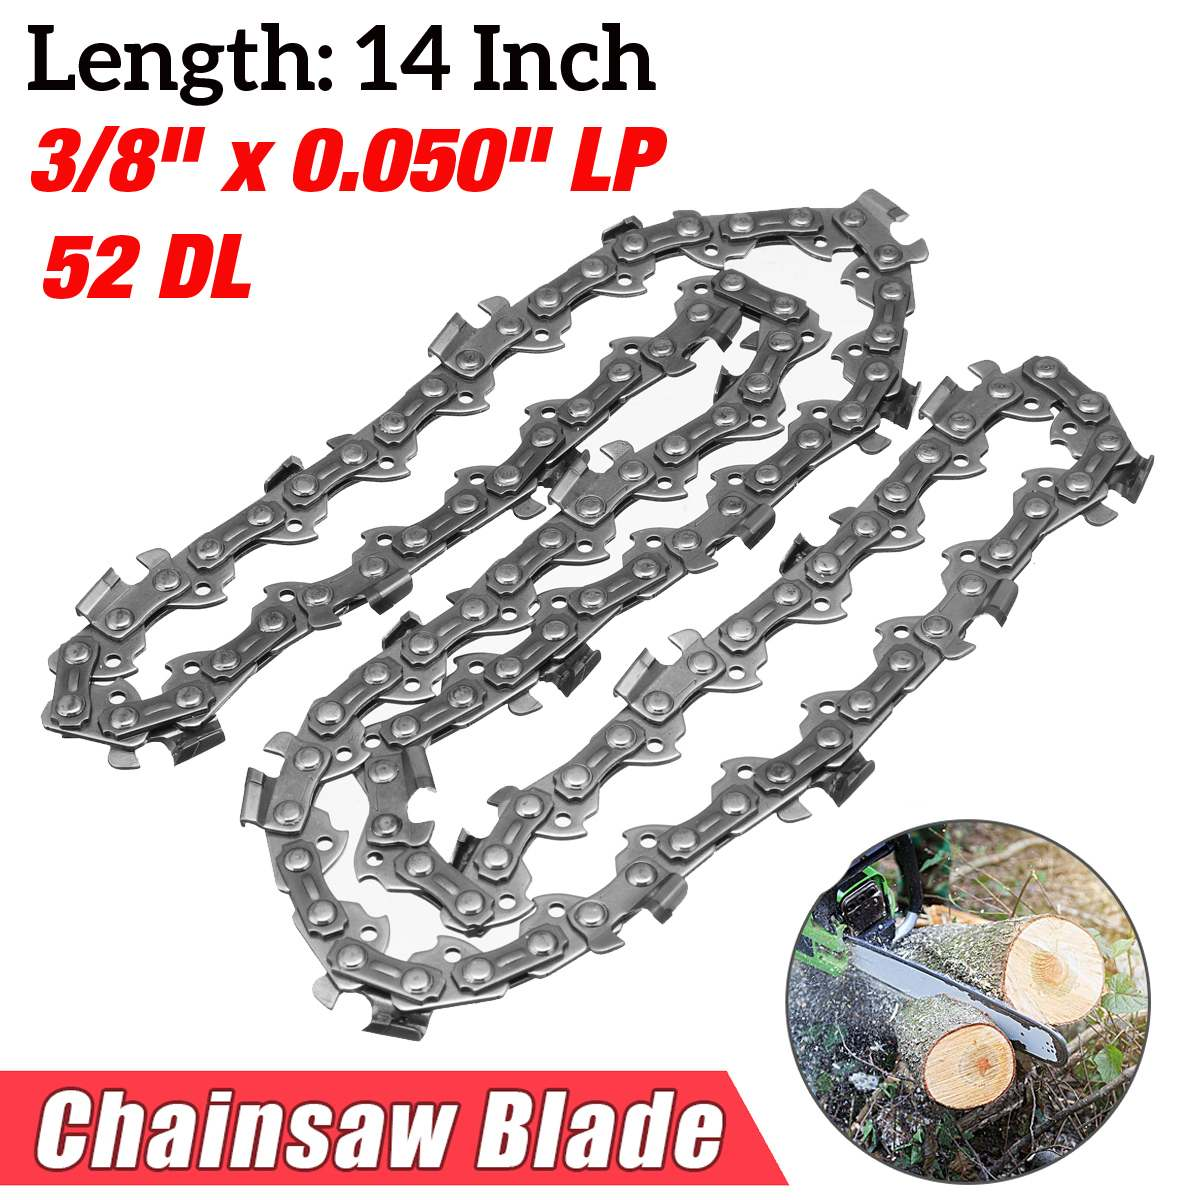 14 inch Garden Chain Saws Alloy Solid Carbide Chainsaw Chain 52 Link Bar 3/8 x 0.050 LP Power Tool parts 18 inch chainsaw chain 68 link bar 1 6mm x 0 325 lp garden chains saws alloy power tool parts